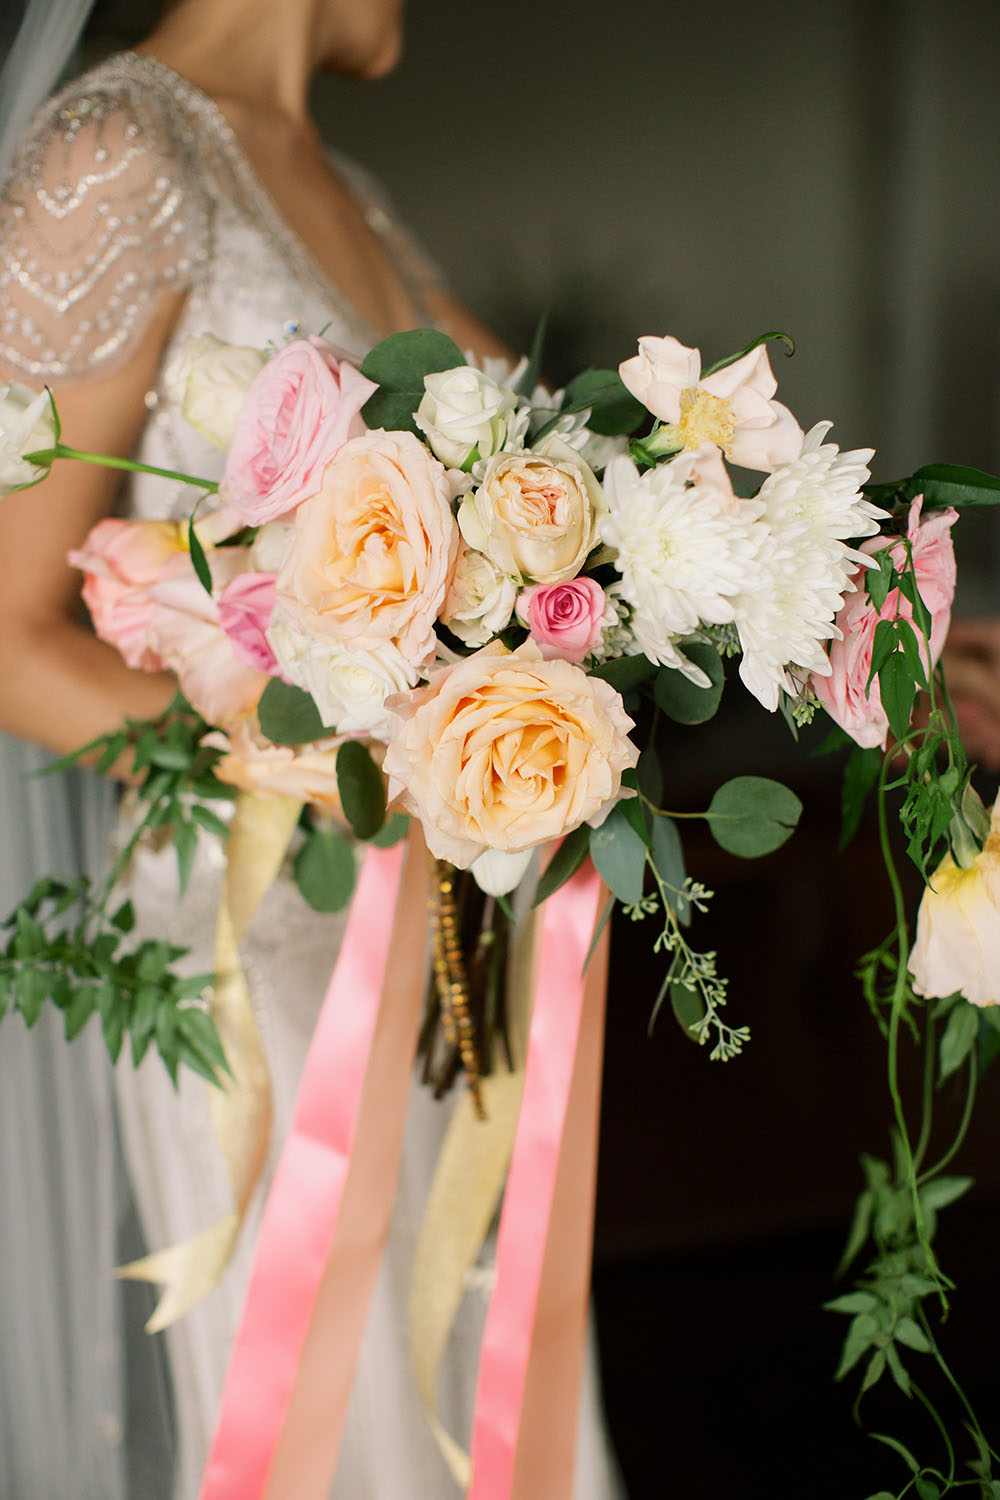 - Bliss Wedding Design and Anna Kim Photography